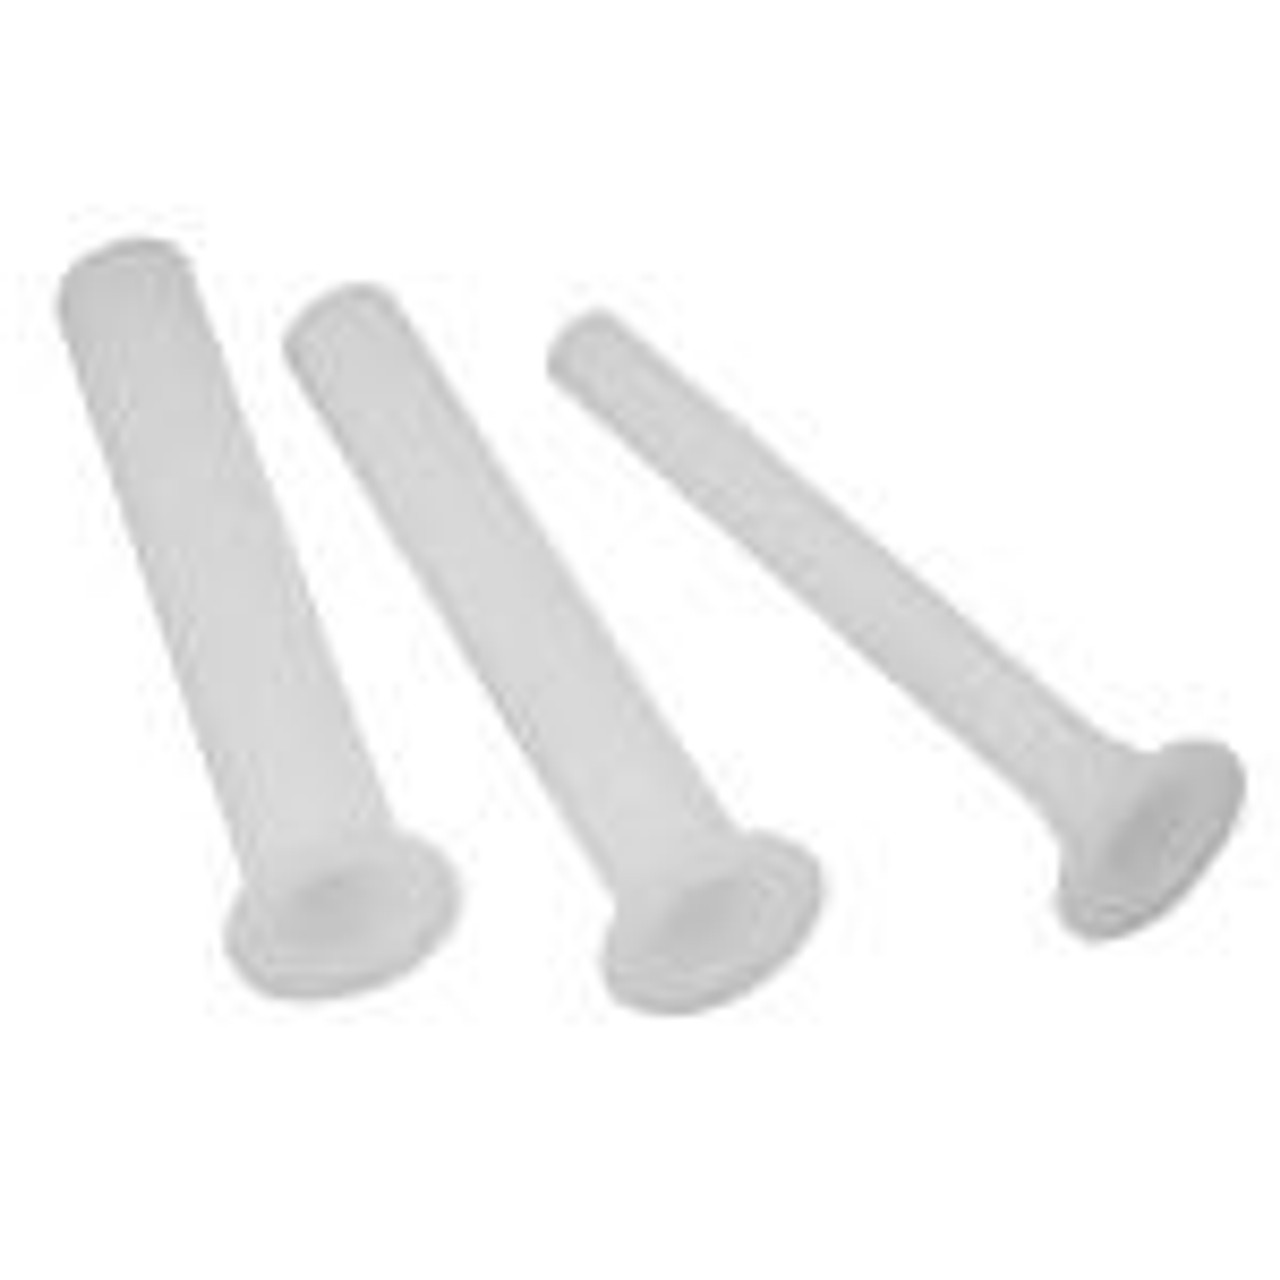 Plastic Stuffing Tubes for 15/20/25/30 lb. Sausage Stuffers, Set of 3 - The Sausage Maker - 18-1115